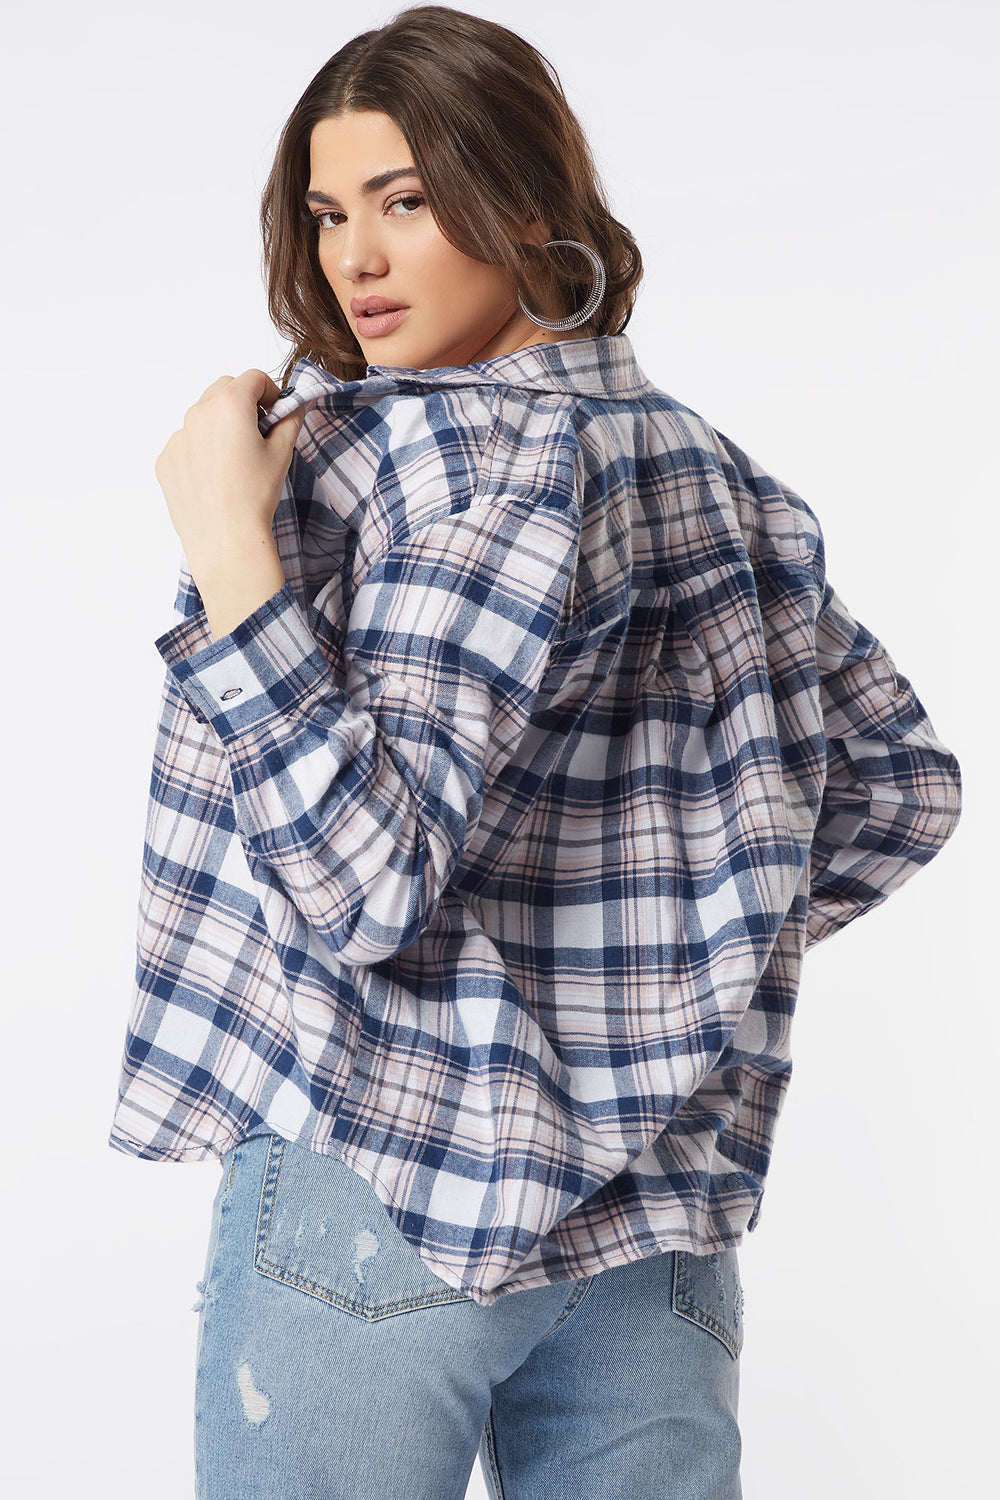 Plaid Flannel Button-Up Long Sleeve Top Pink